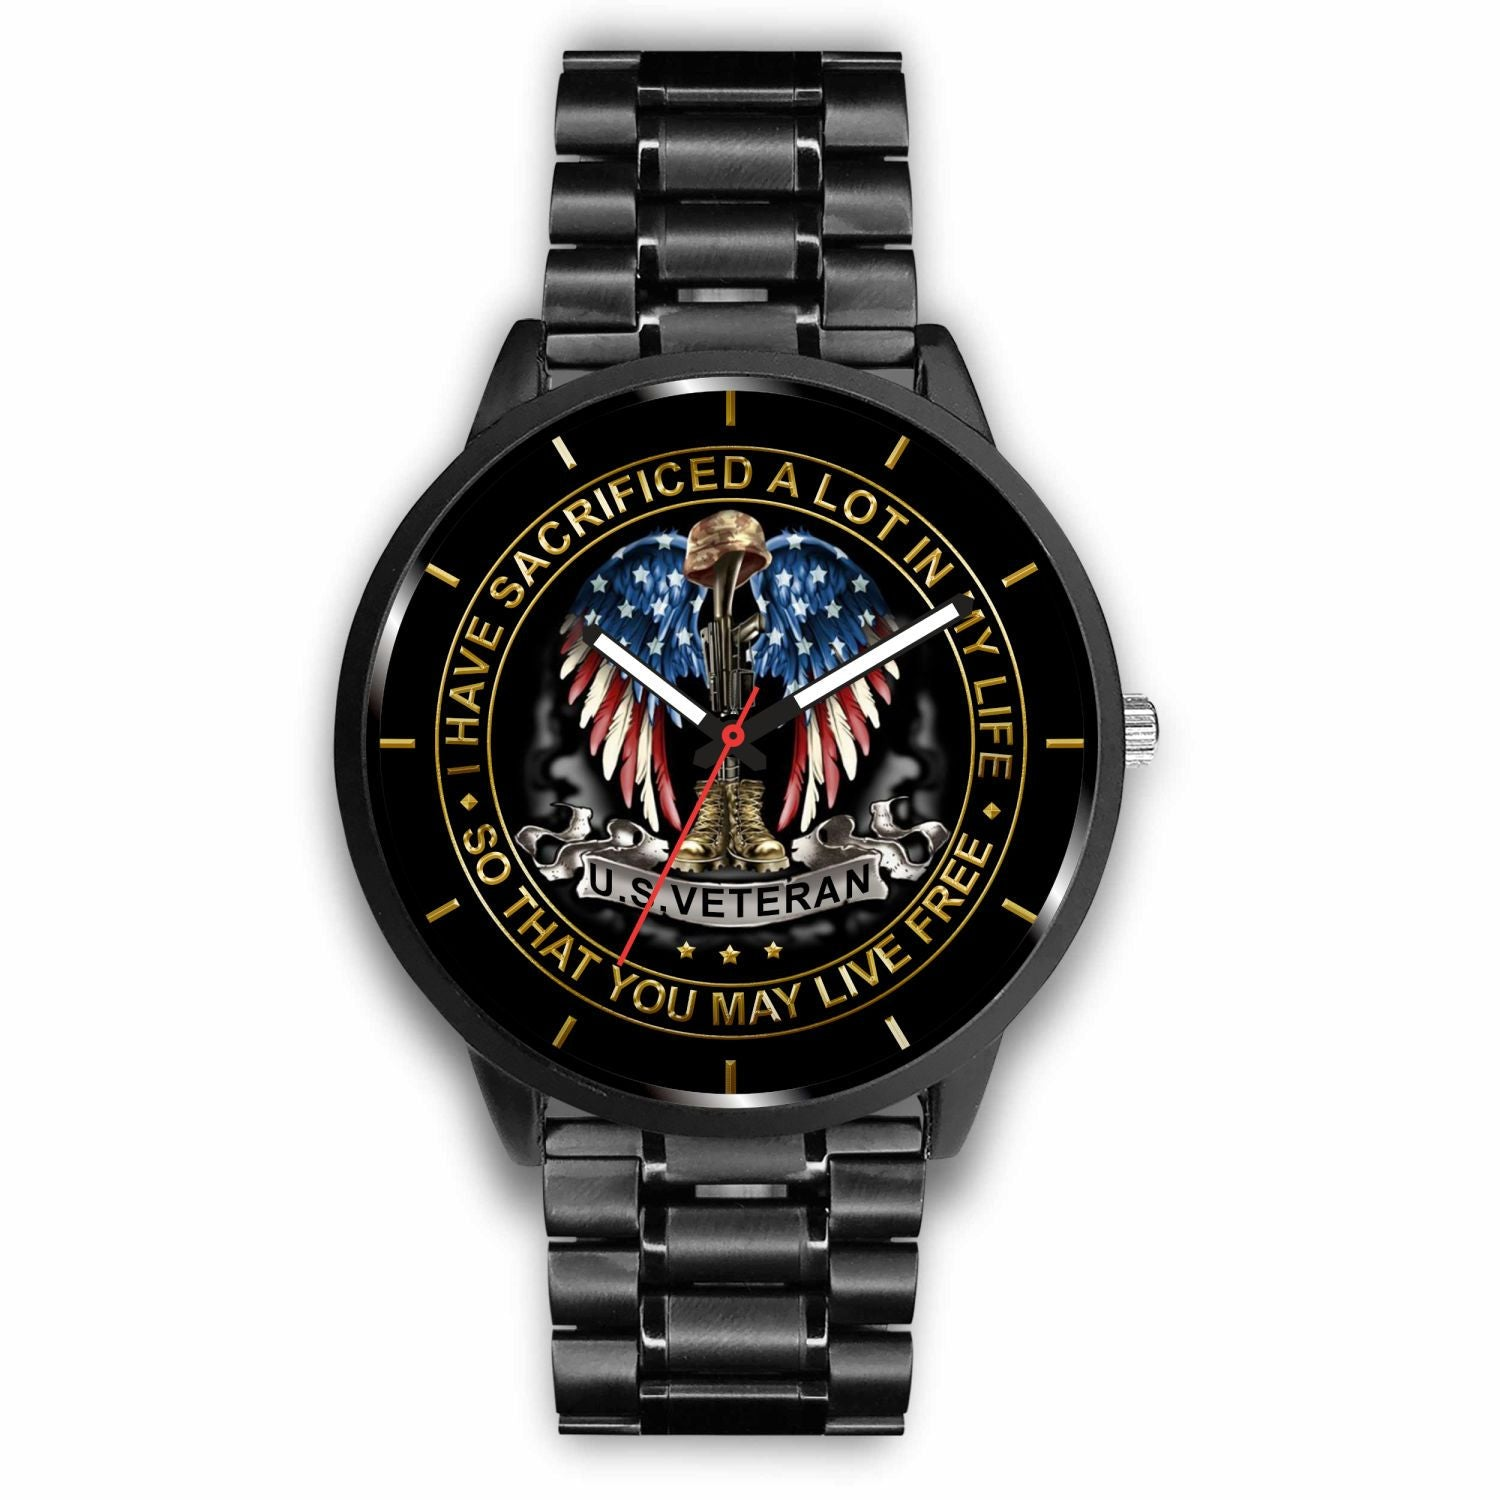 I HAVE SACRIFICED A LOT IN MY LIFE SO THAT YOU MAY LIVE FREE U.S VETERAN WATCH